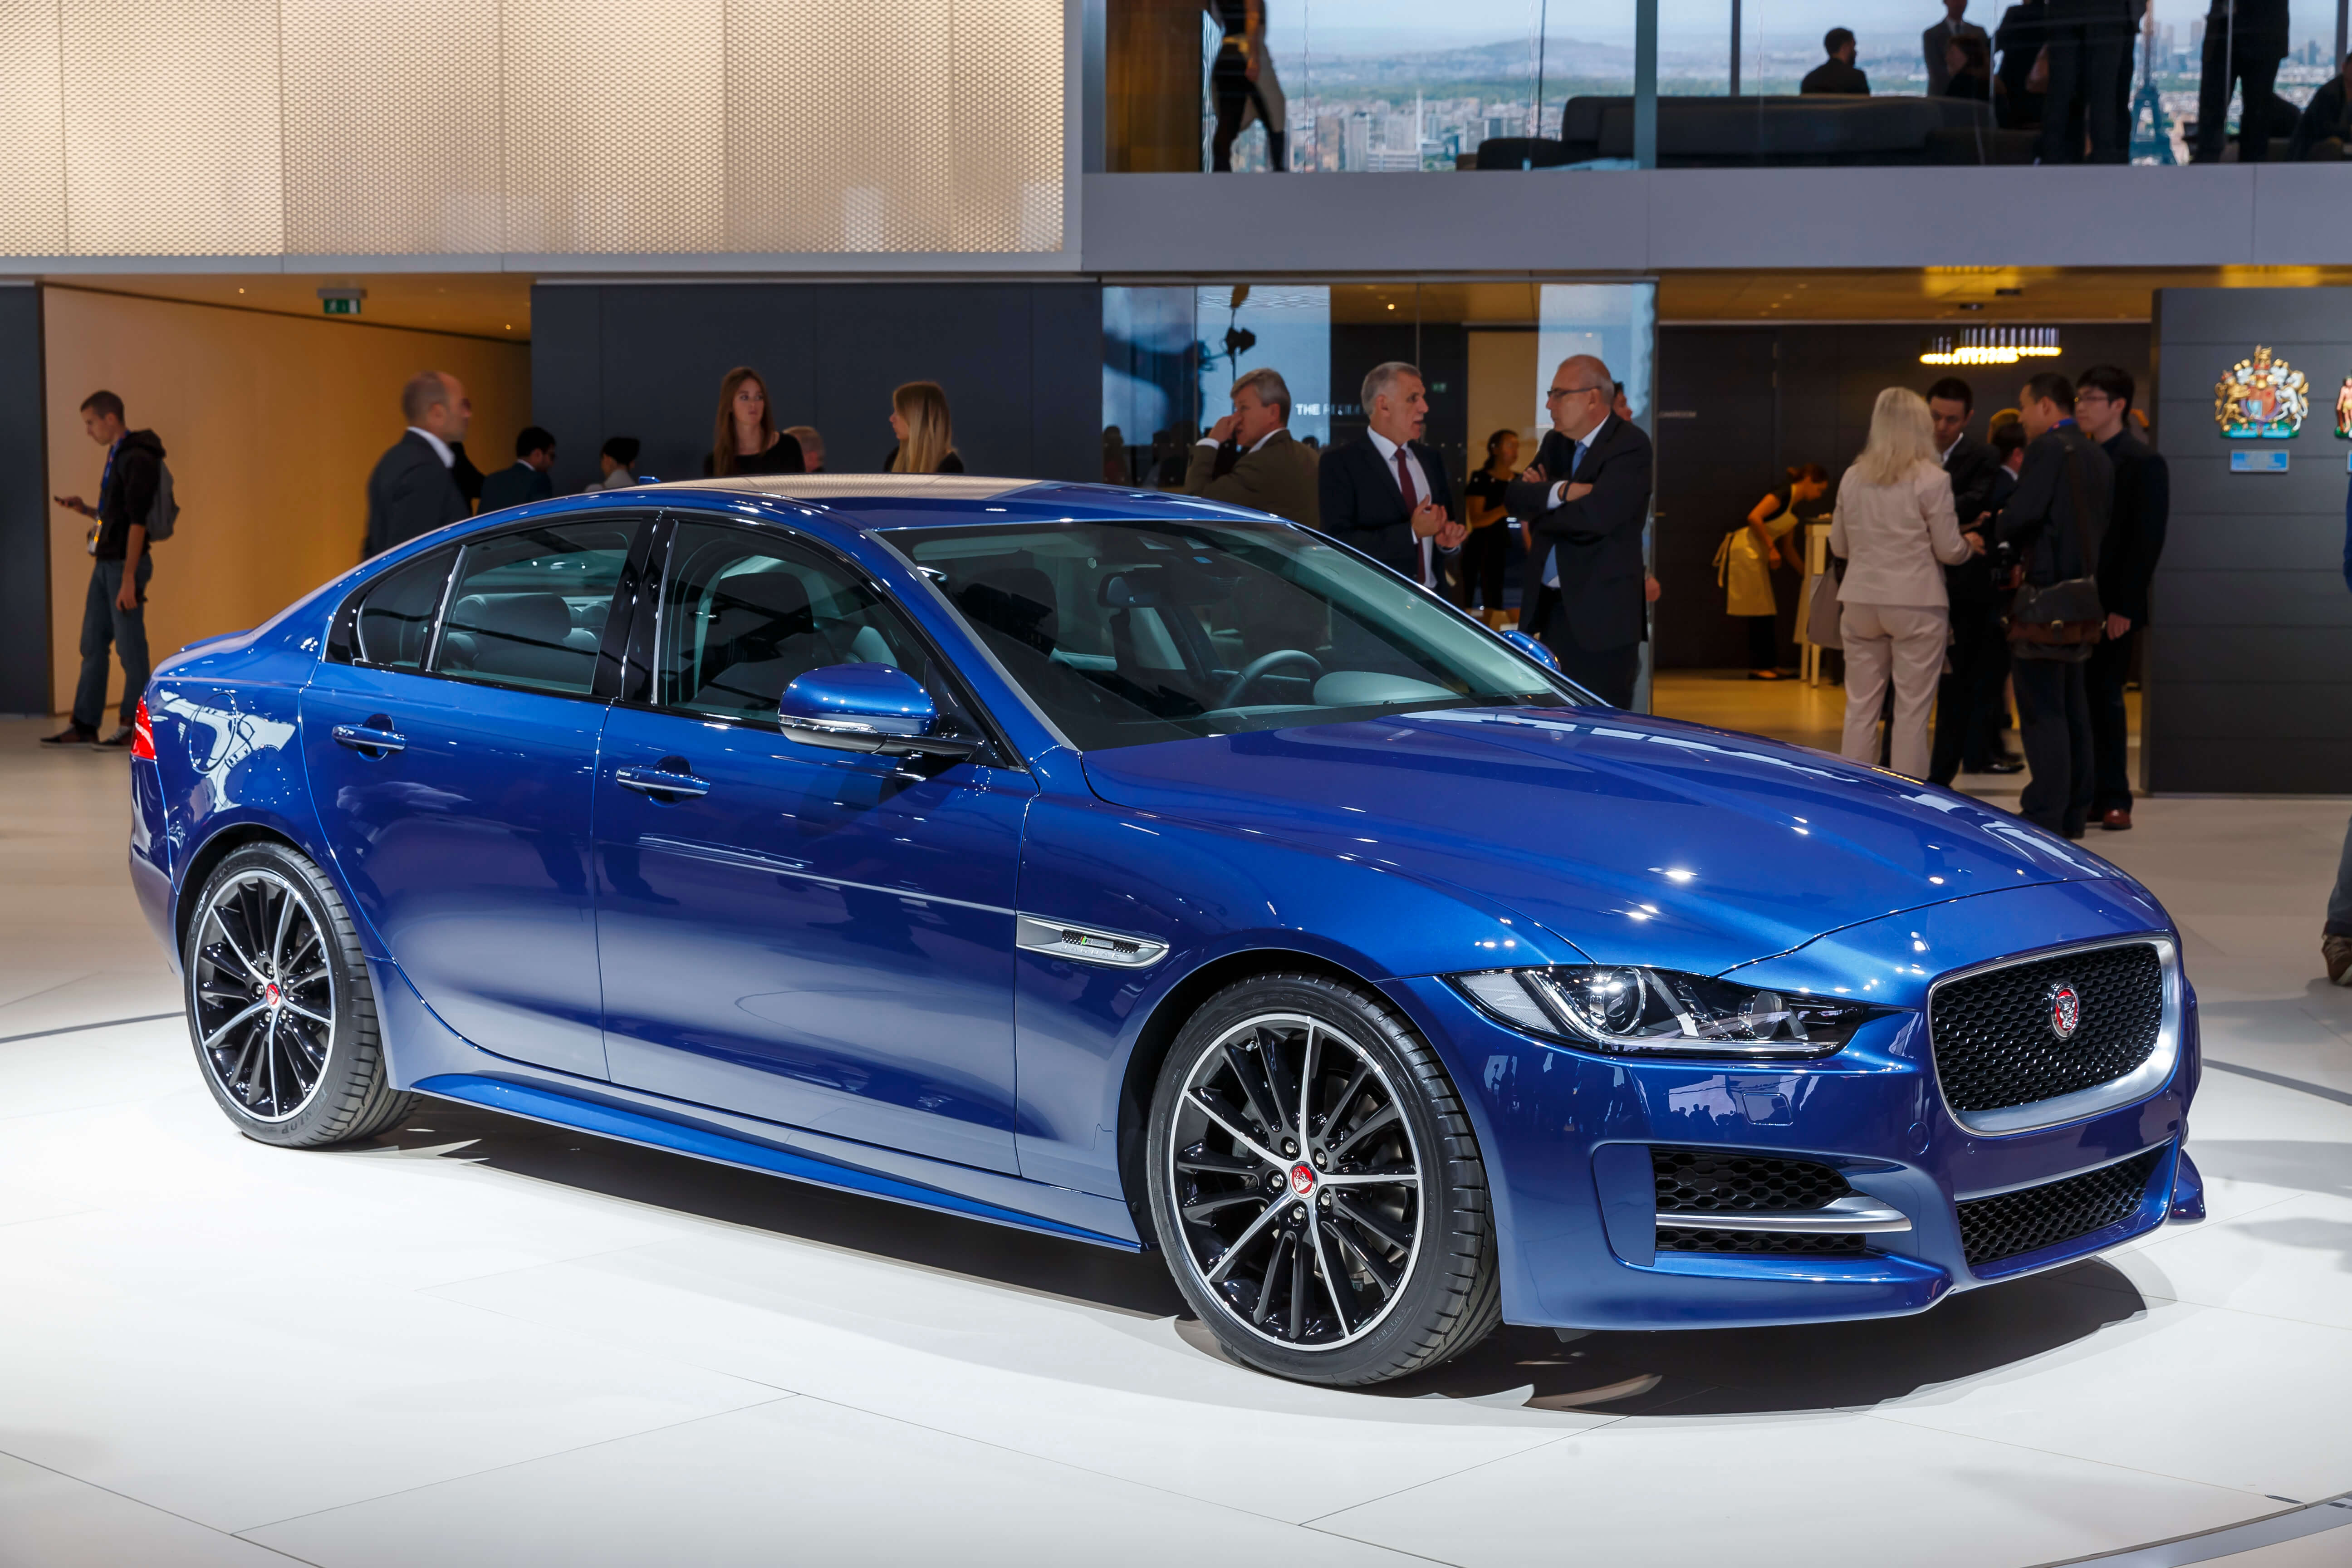 Blue automobile in a leasing vs buying a car showroom and people around the car.